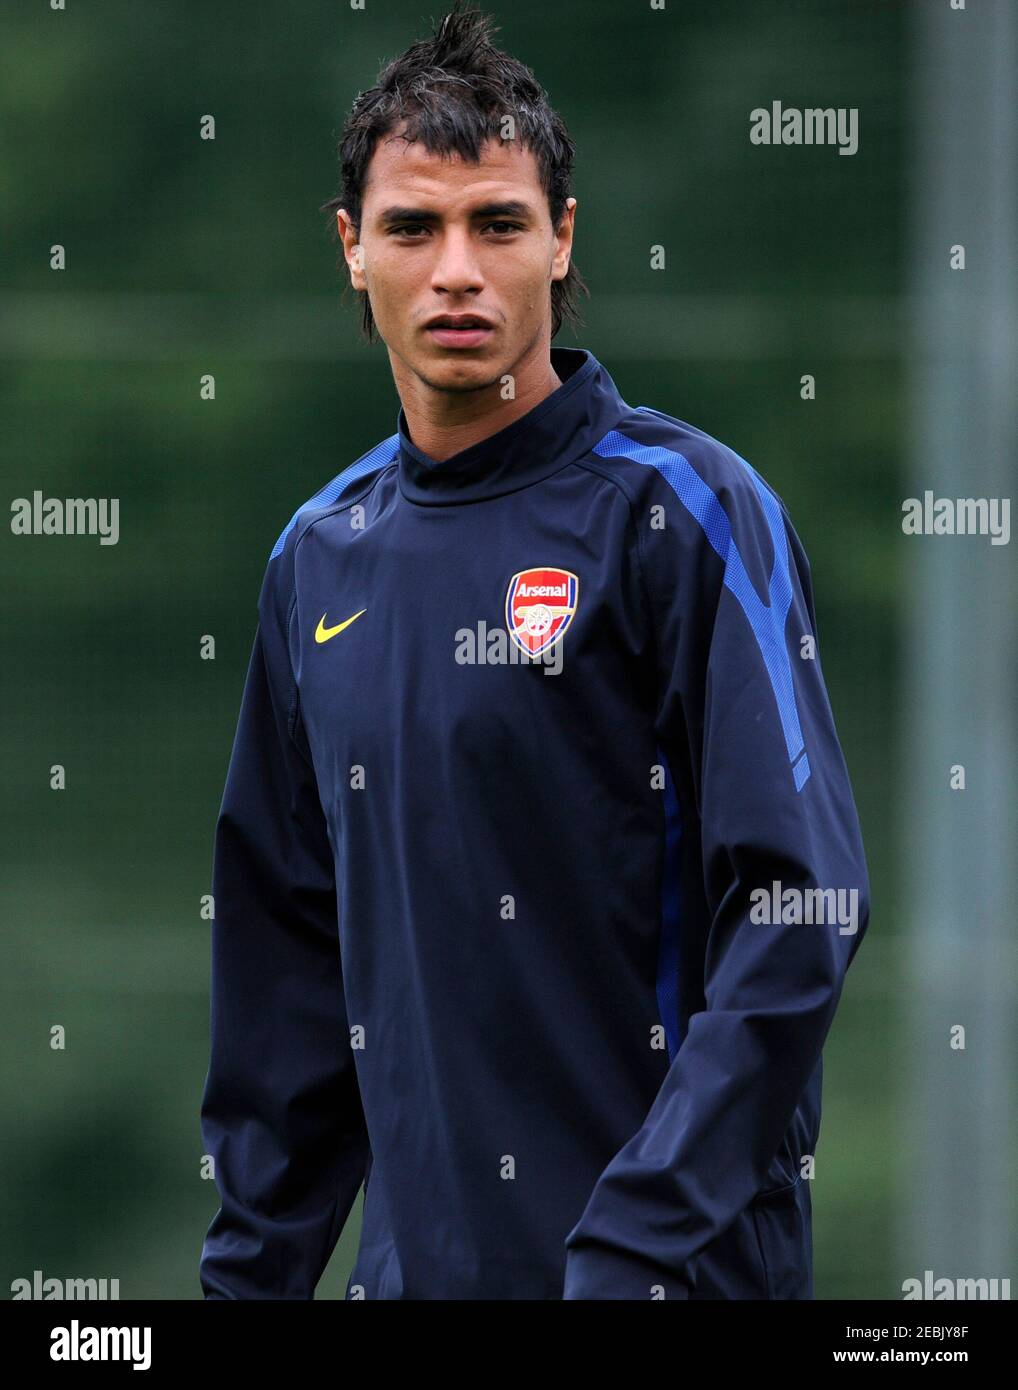 Page 2 Chamakh High Resolution Stock Photography And Images Alamy